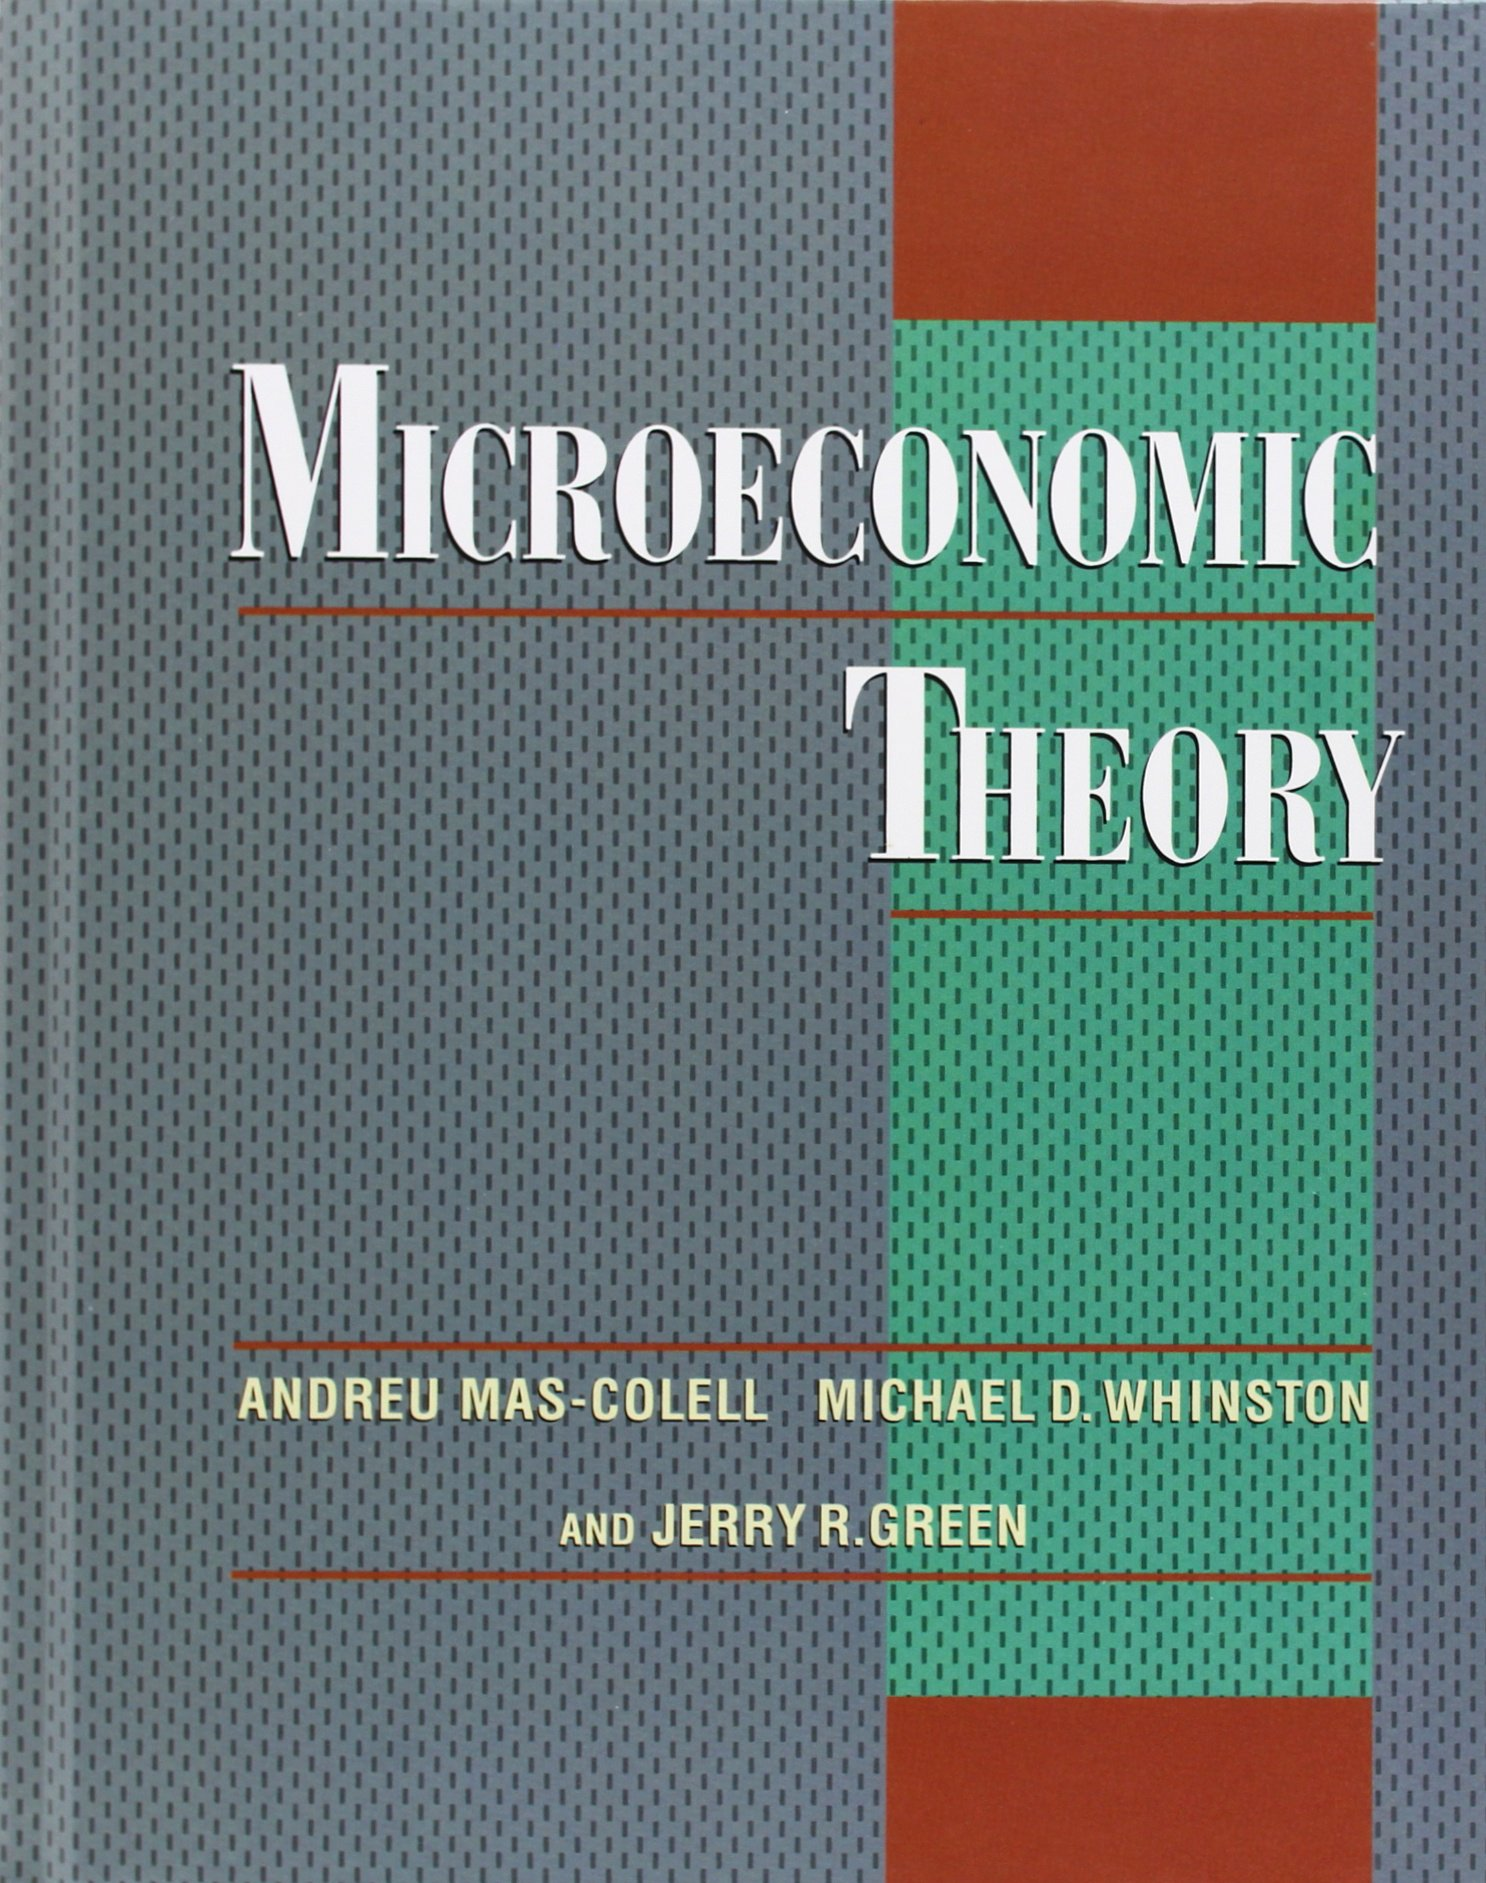 whinston and green microeconomic theory pdf